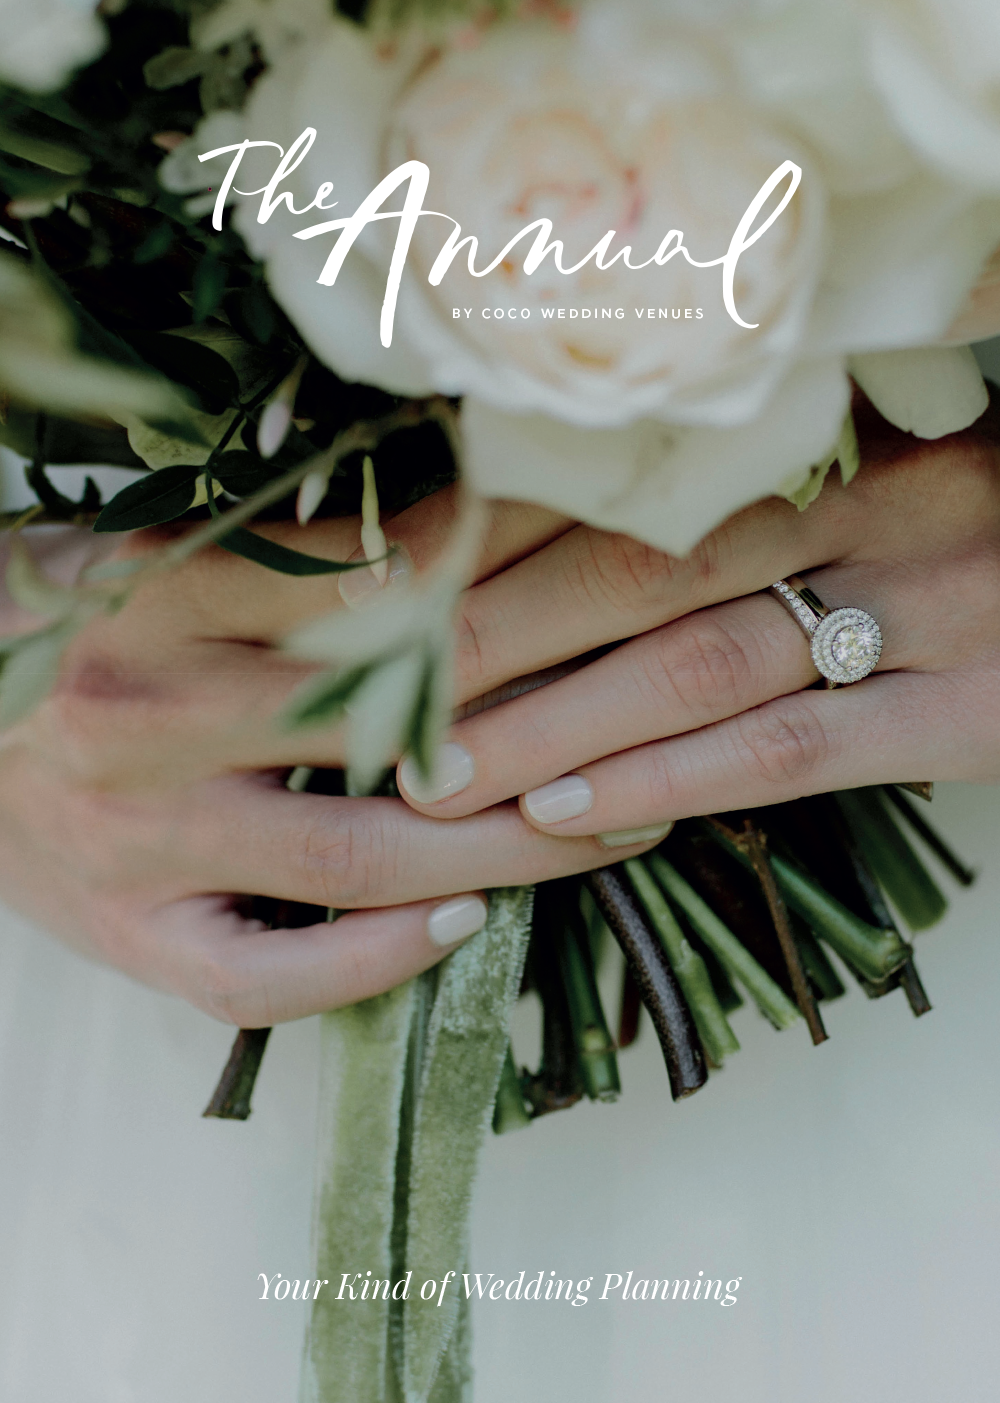 The Annual by Coco Wedding Venues